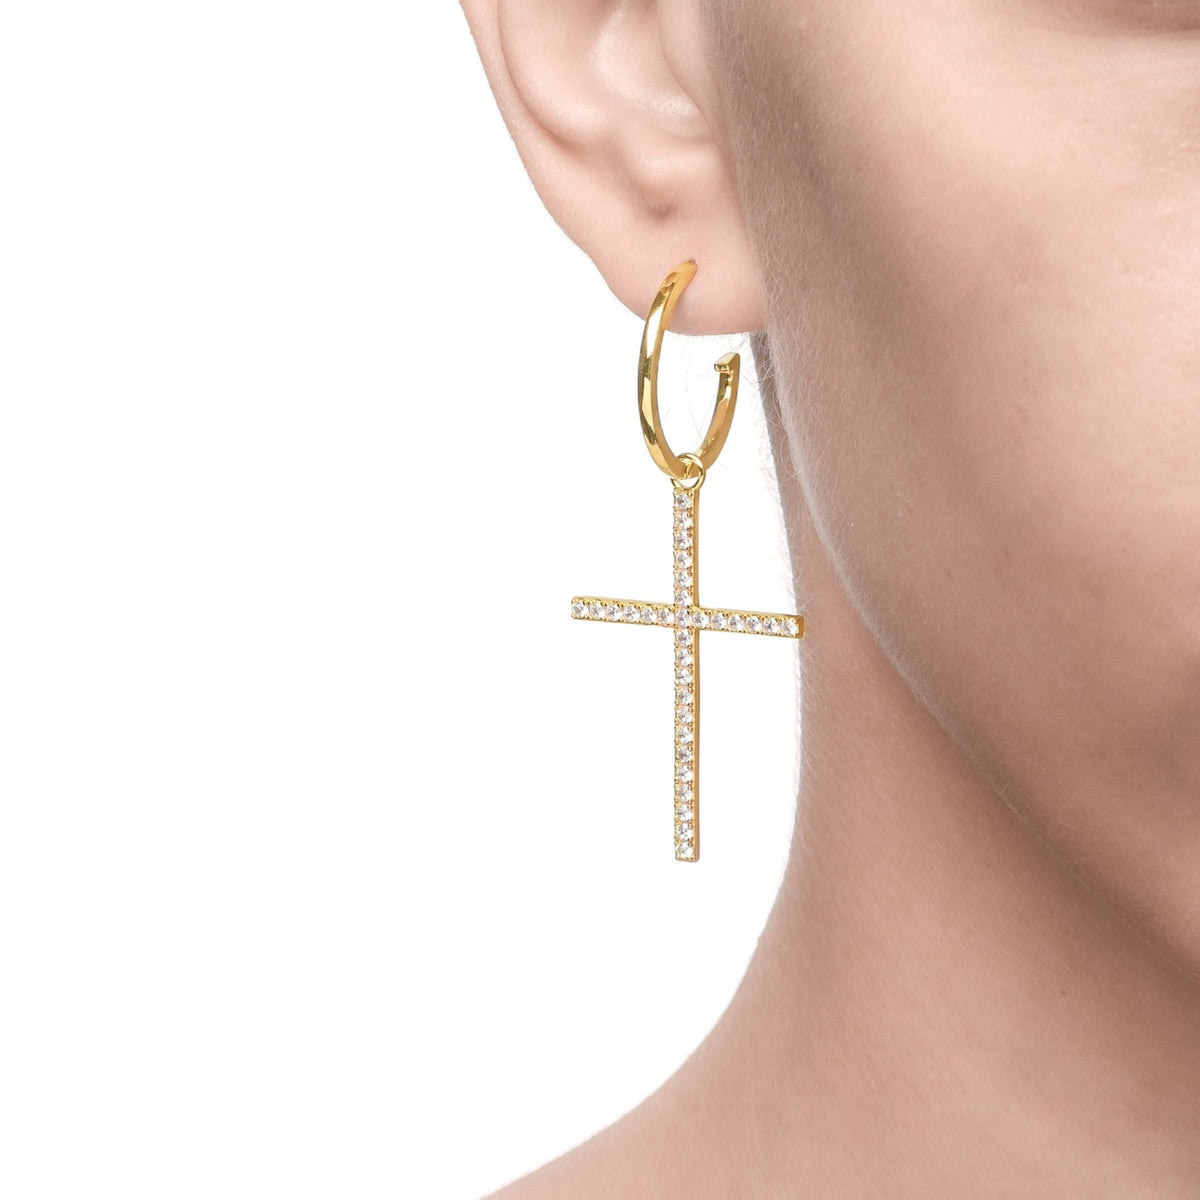 Fortuna | Grosseto Earrings | 925 Silver | White CZ | 18K Gold Plated